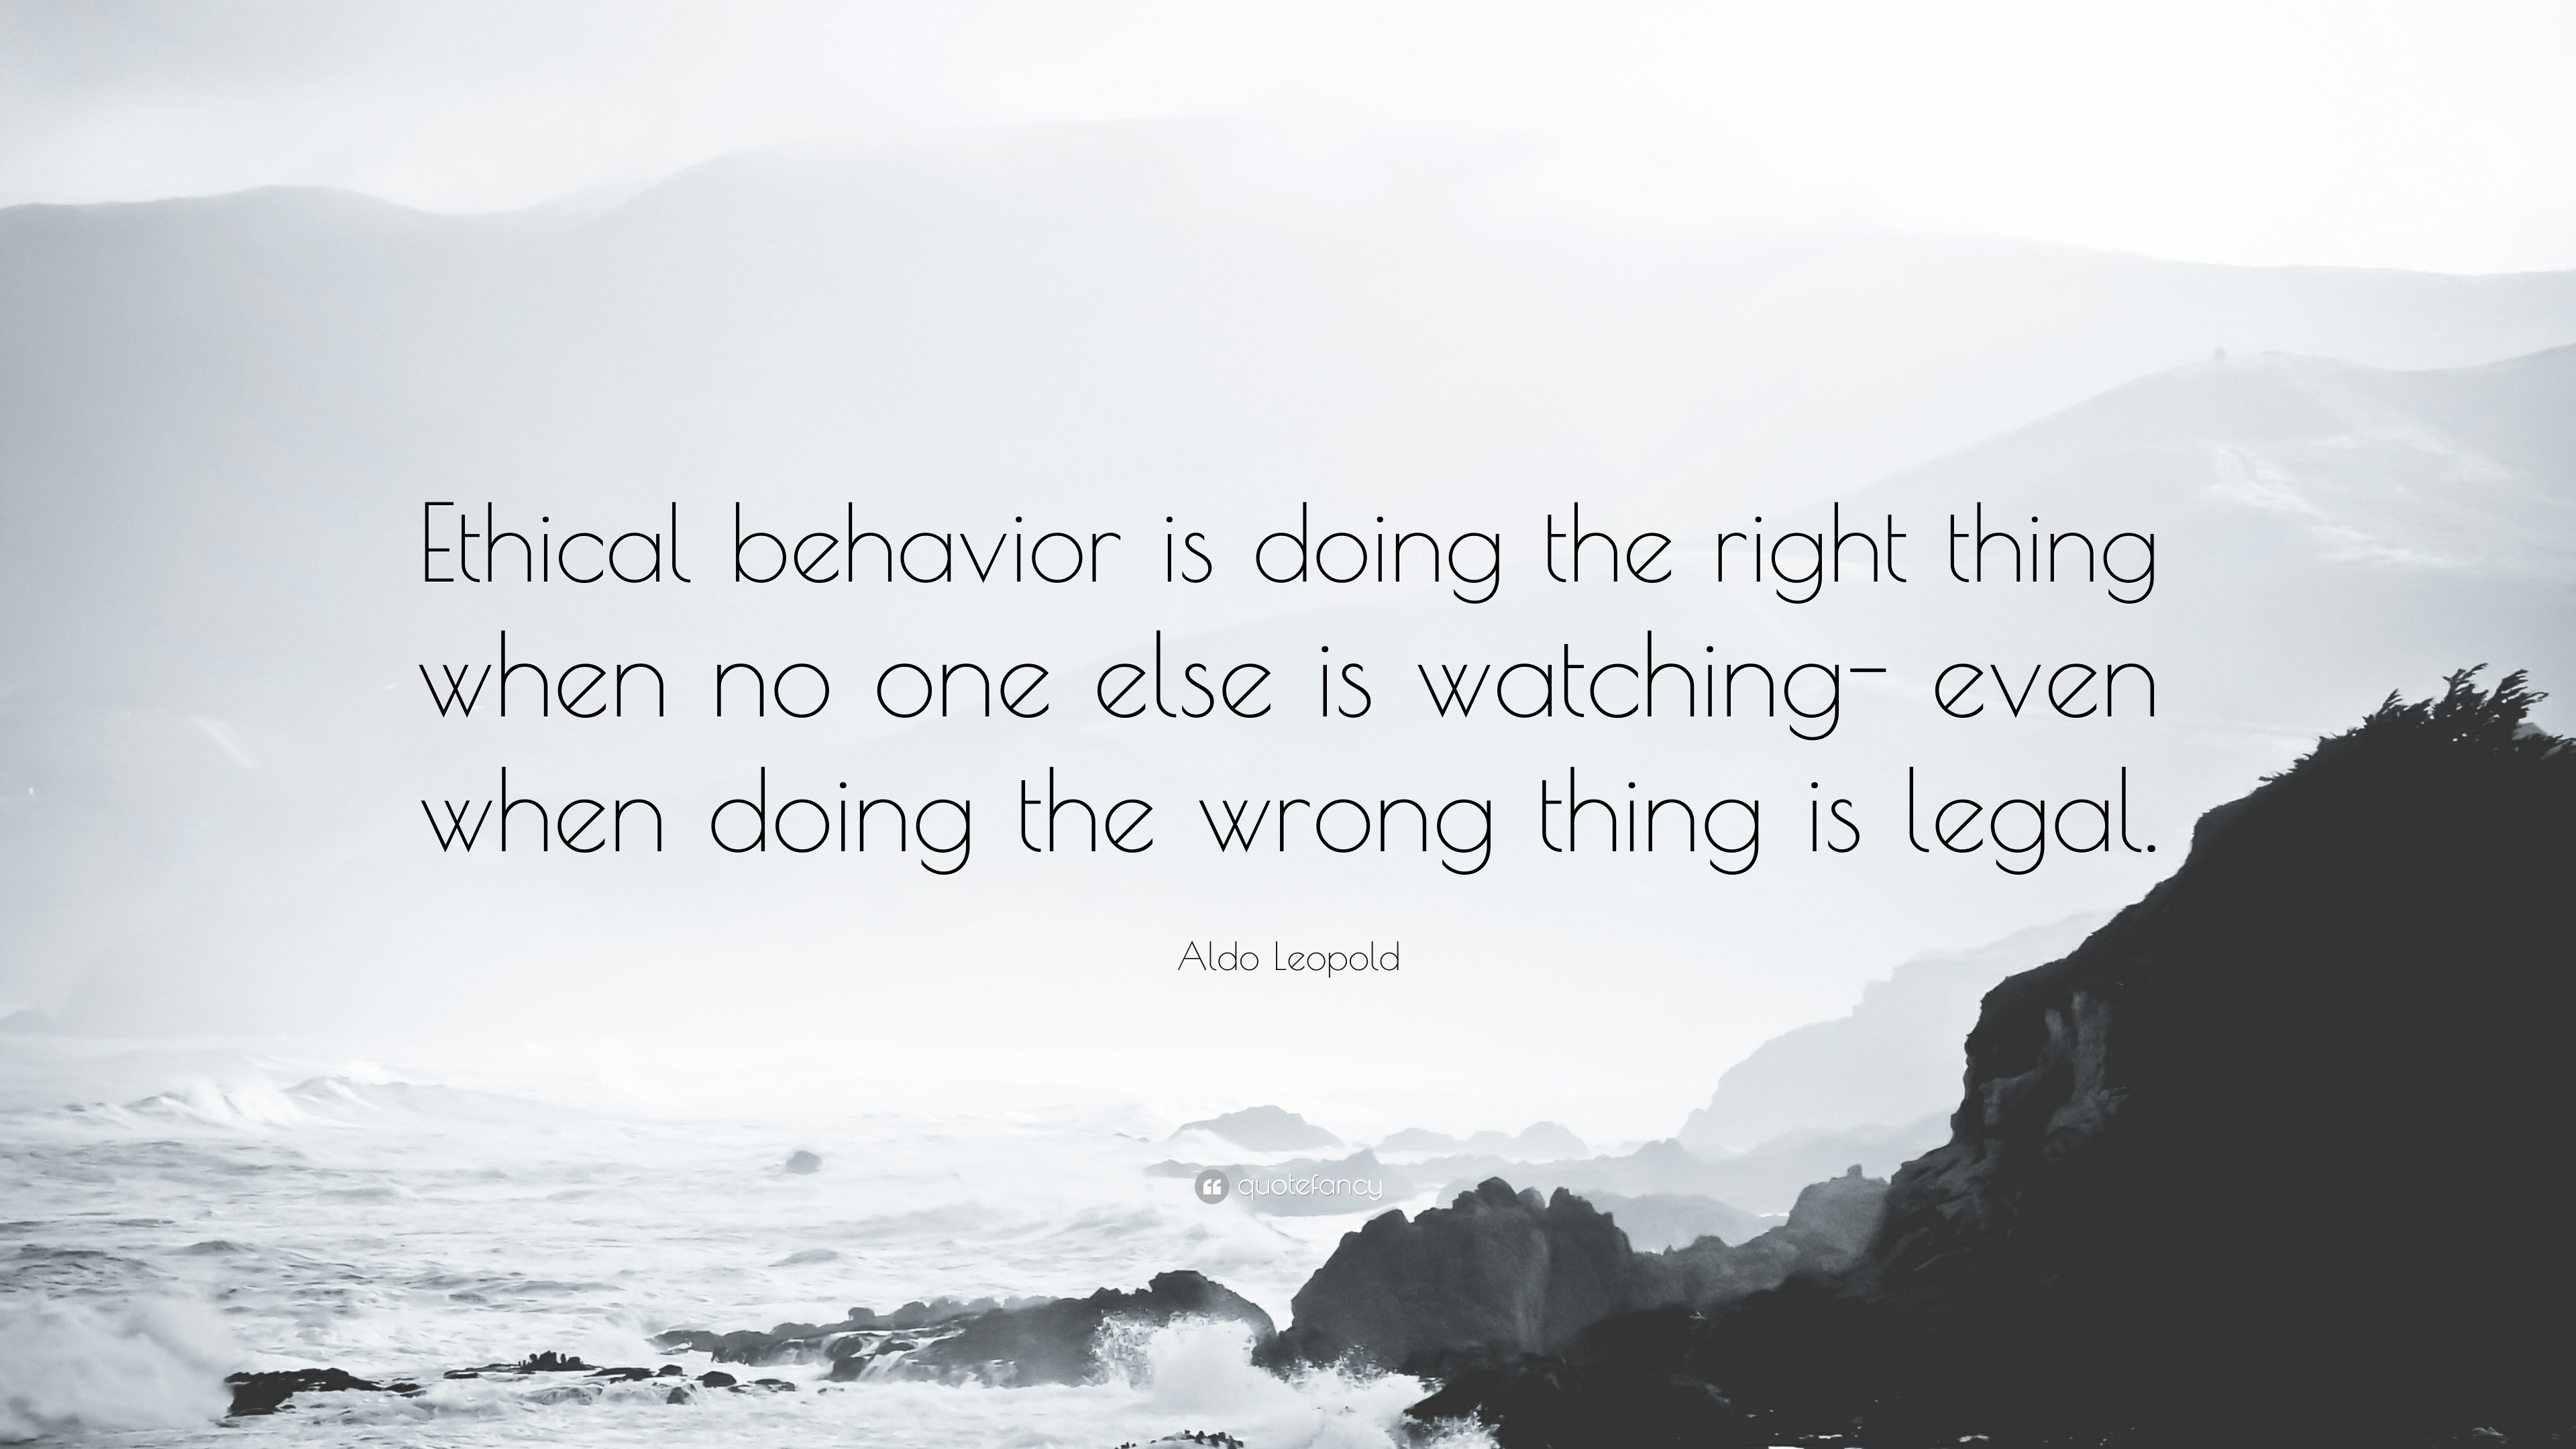 Aldo Leopold Quote Ethical Behavior Is Doing The Right Thing When